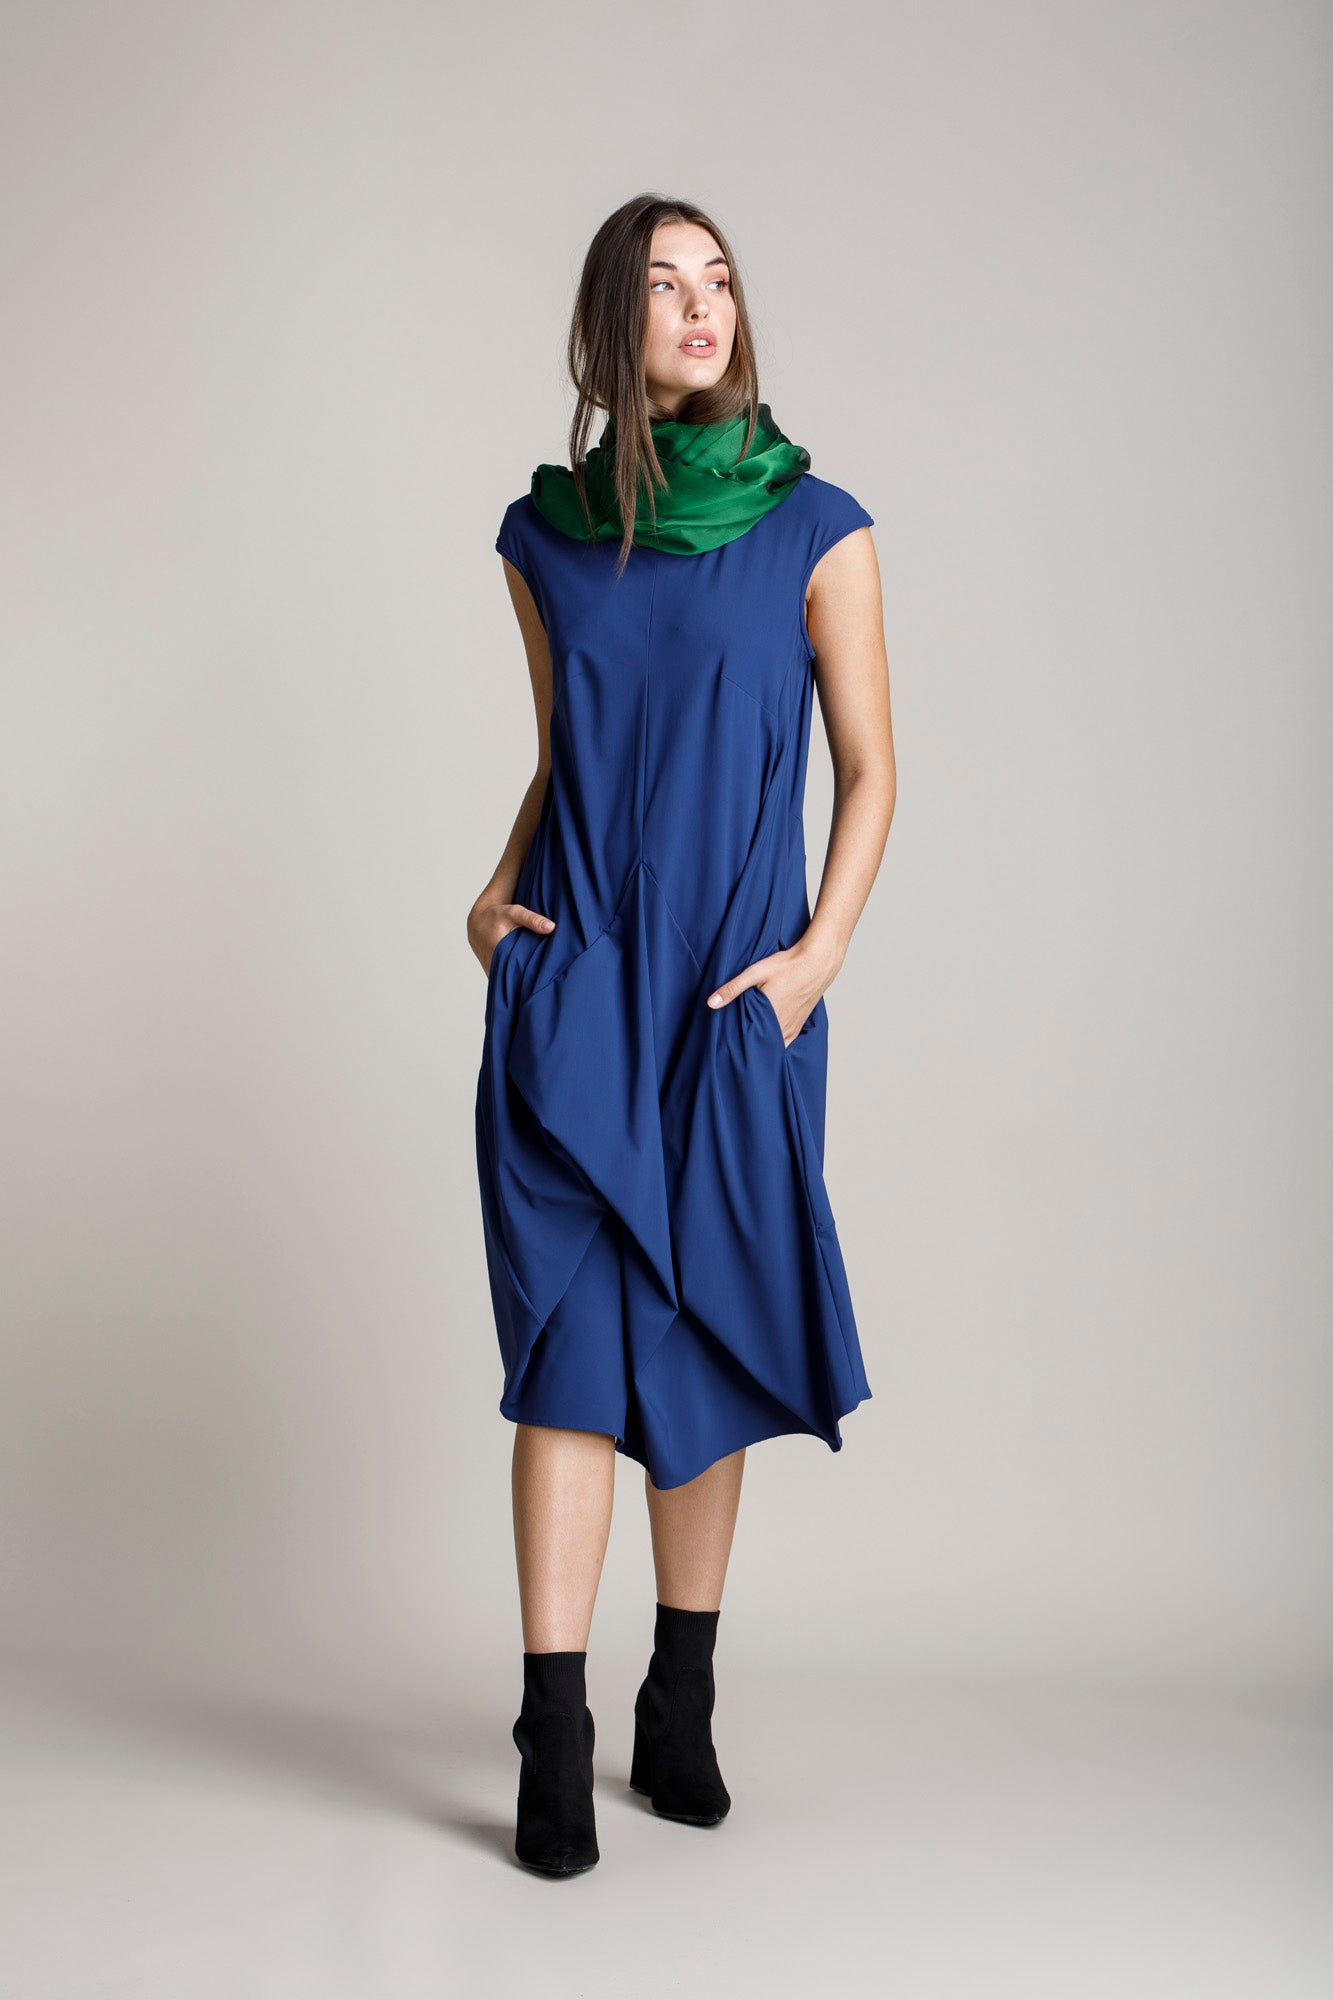 Indigo Jersey Tucked Cap Sleeve Dress 5282